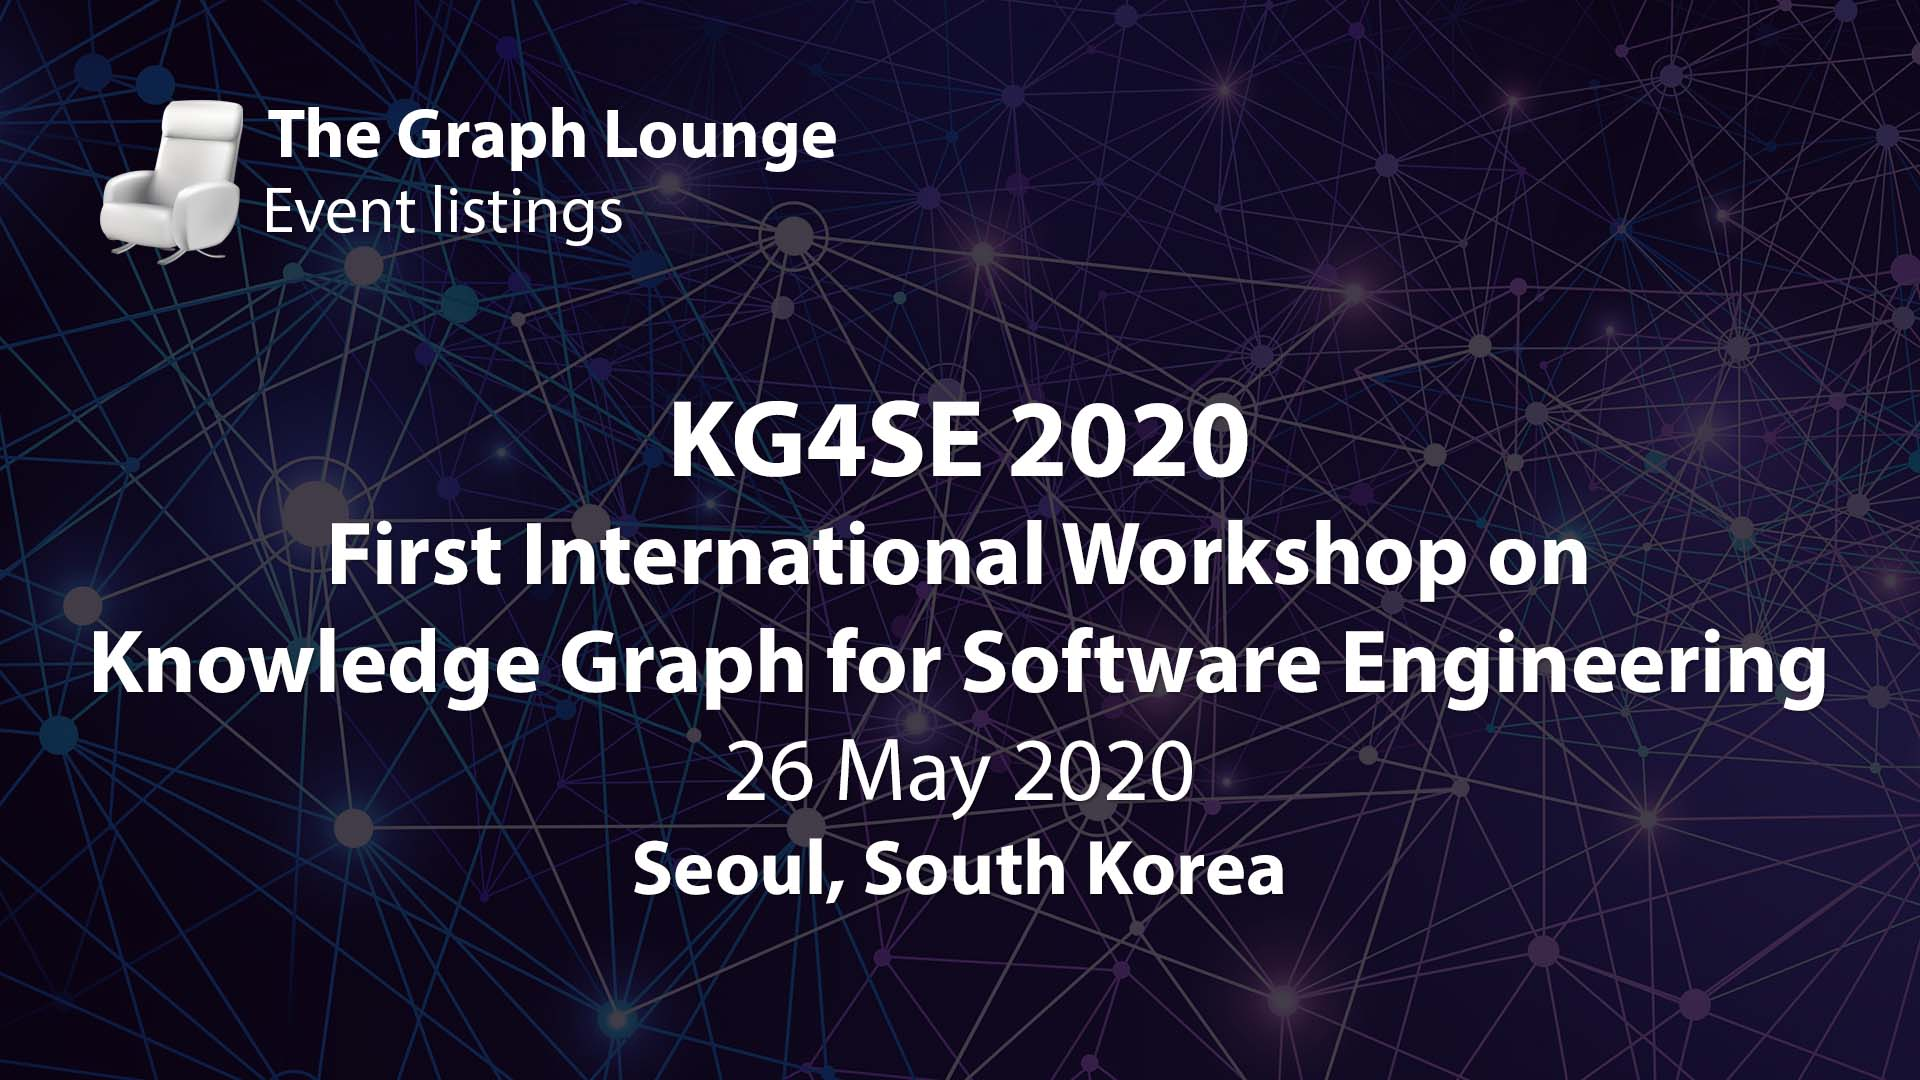 KG4SE 2020 (First International Workshop on Knowledge Graph for Software Engineering)